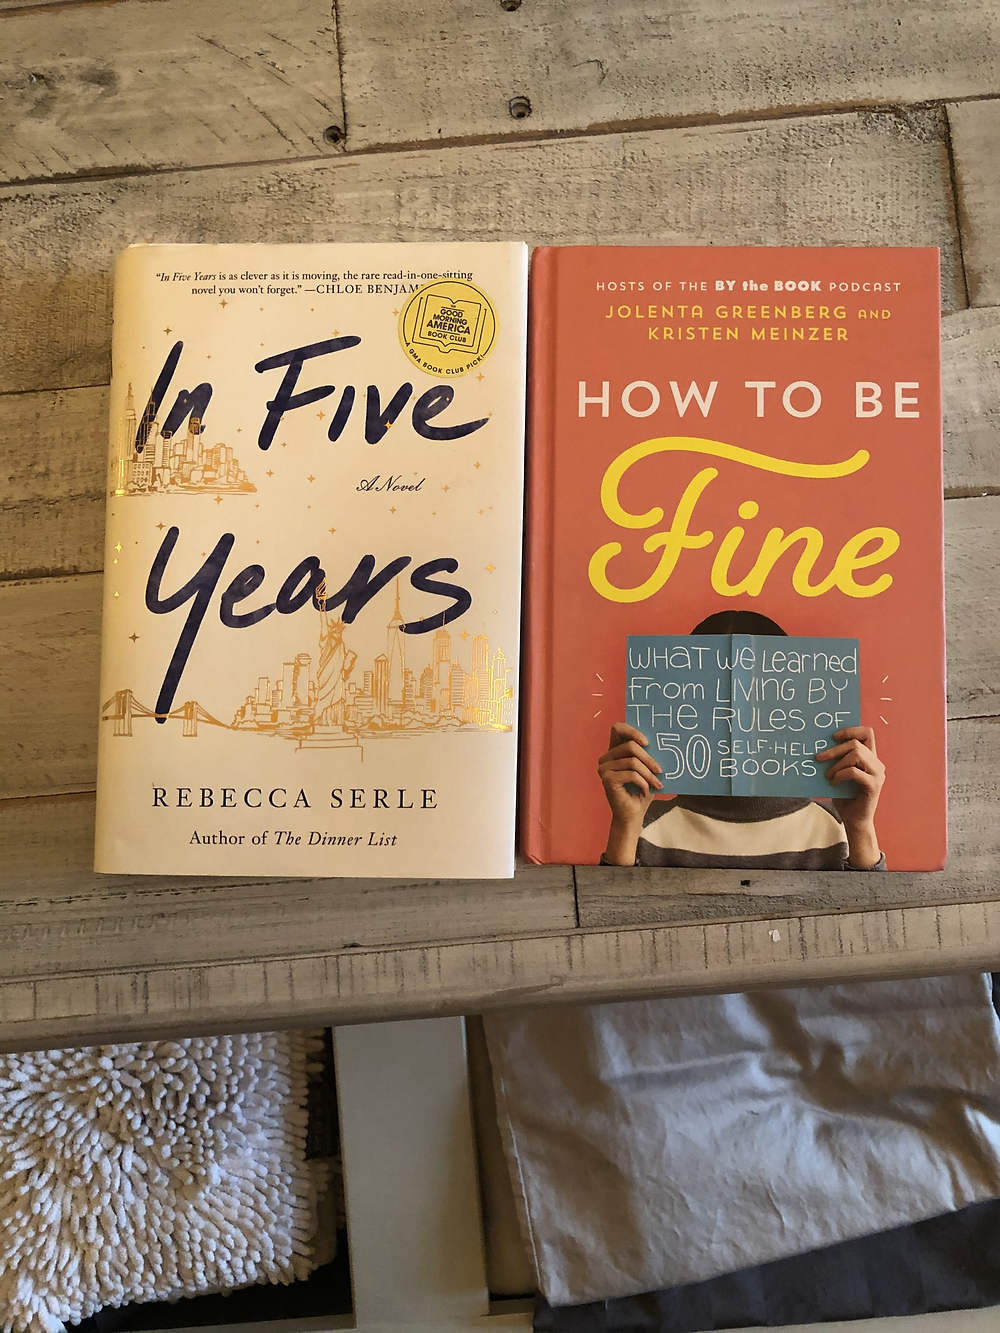 The books In Five Years and How to be Fine